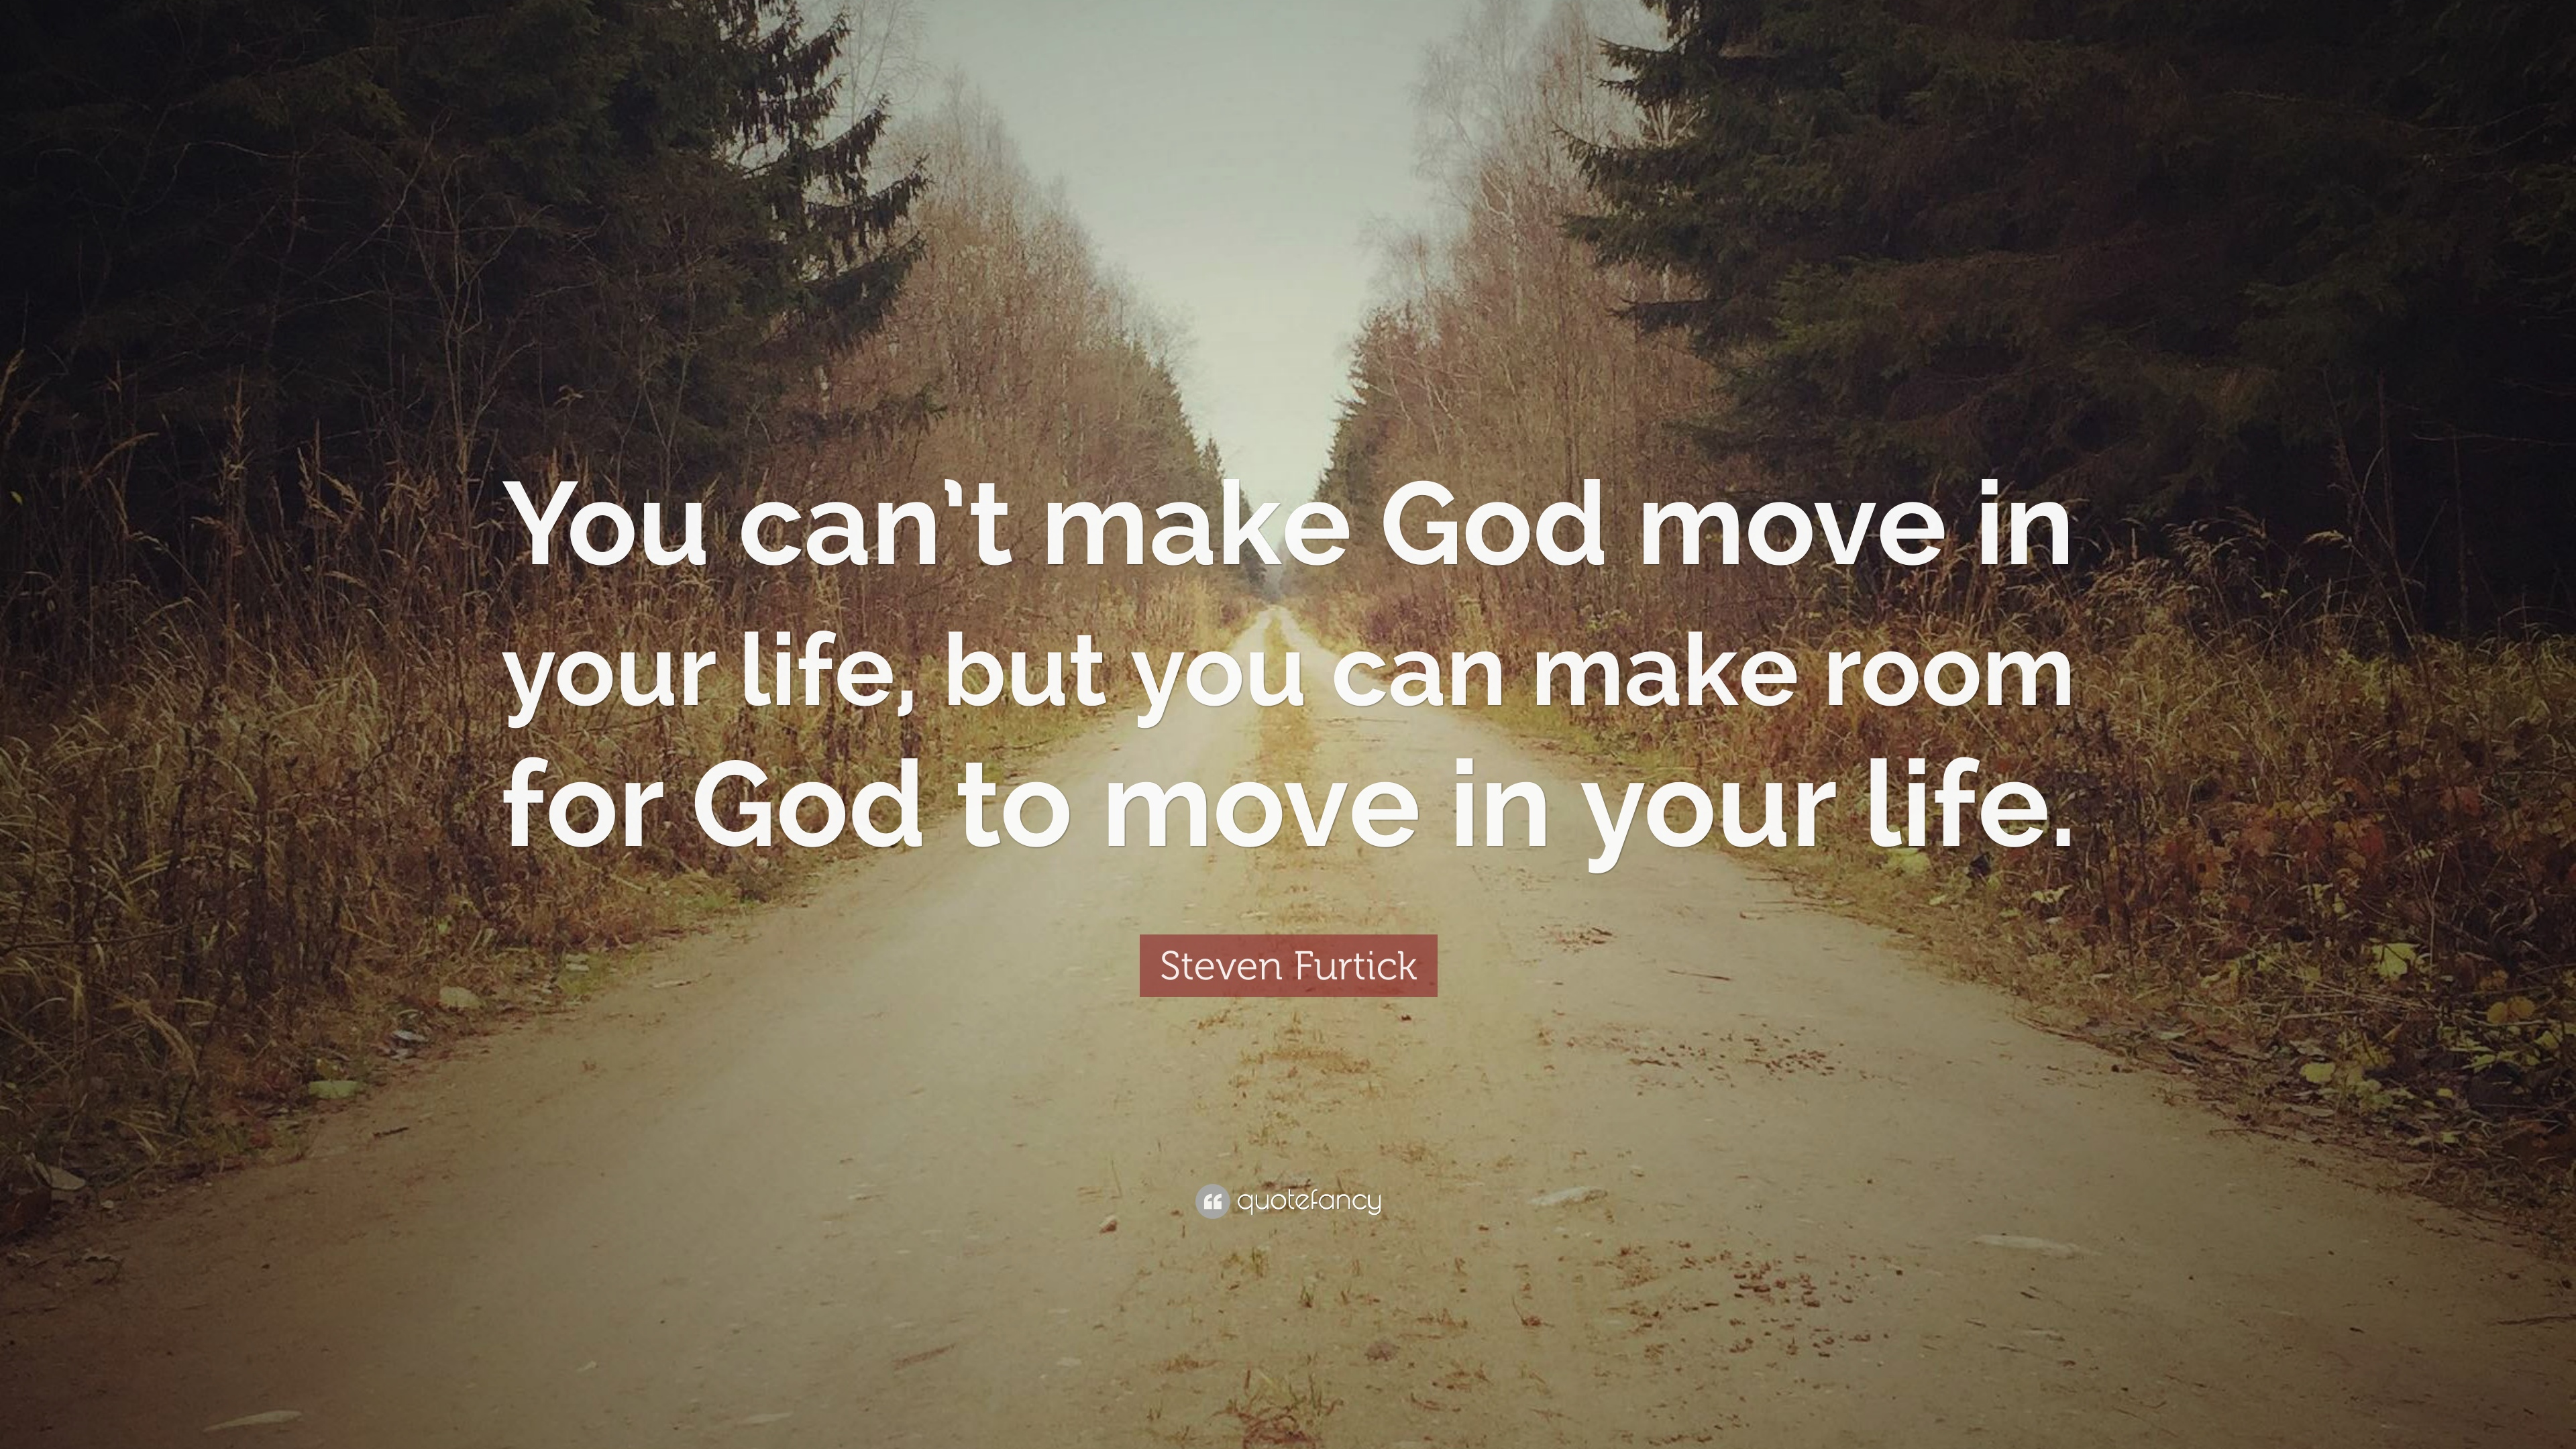 Steven Furtick Quote You Cant Make God Move In Your Life But You